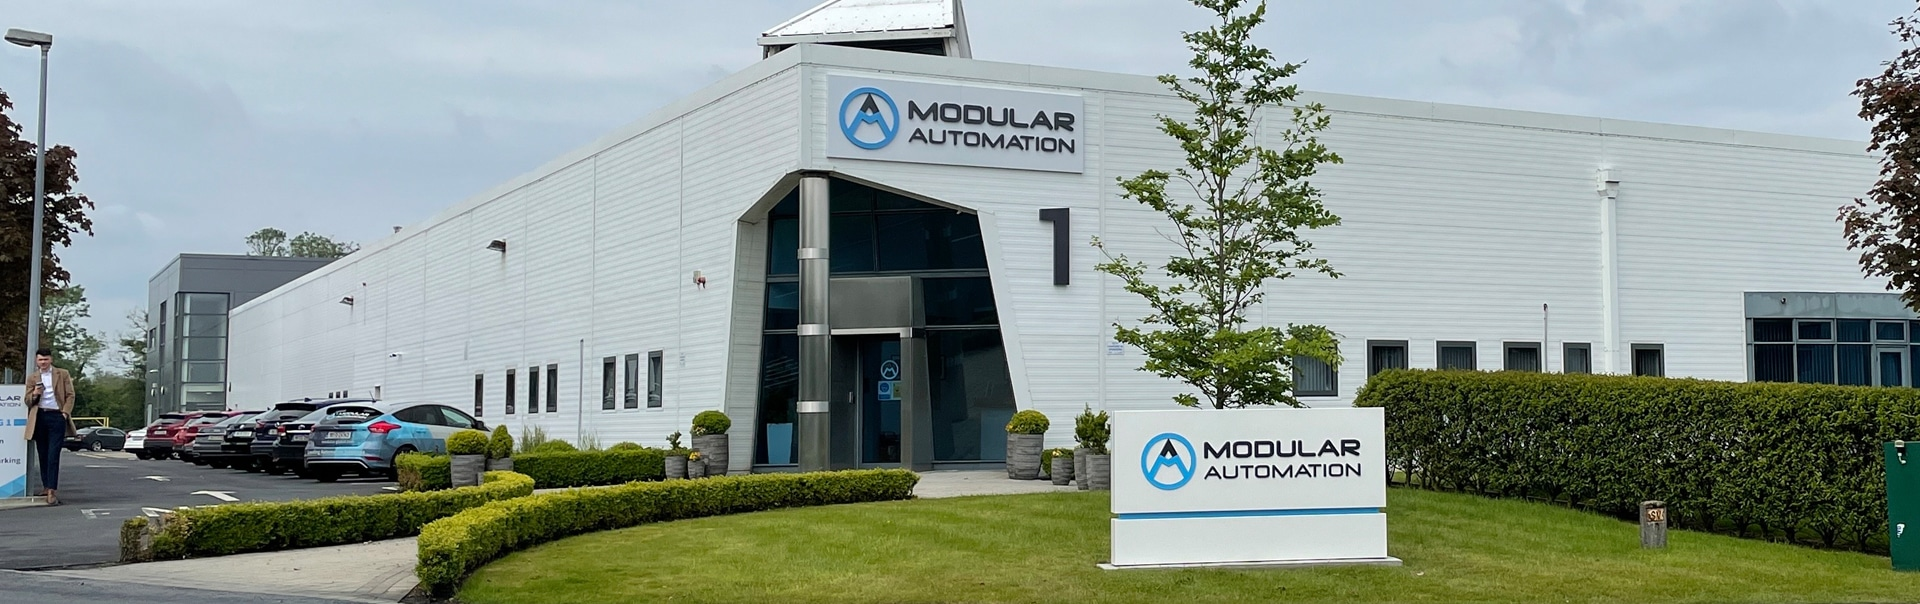 New wayfinding signs identify the main reception at the Modular Automation headquarters